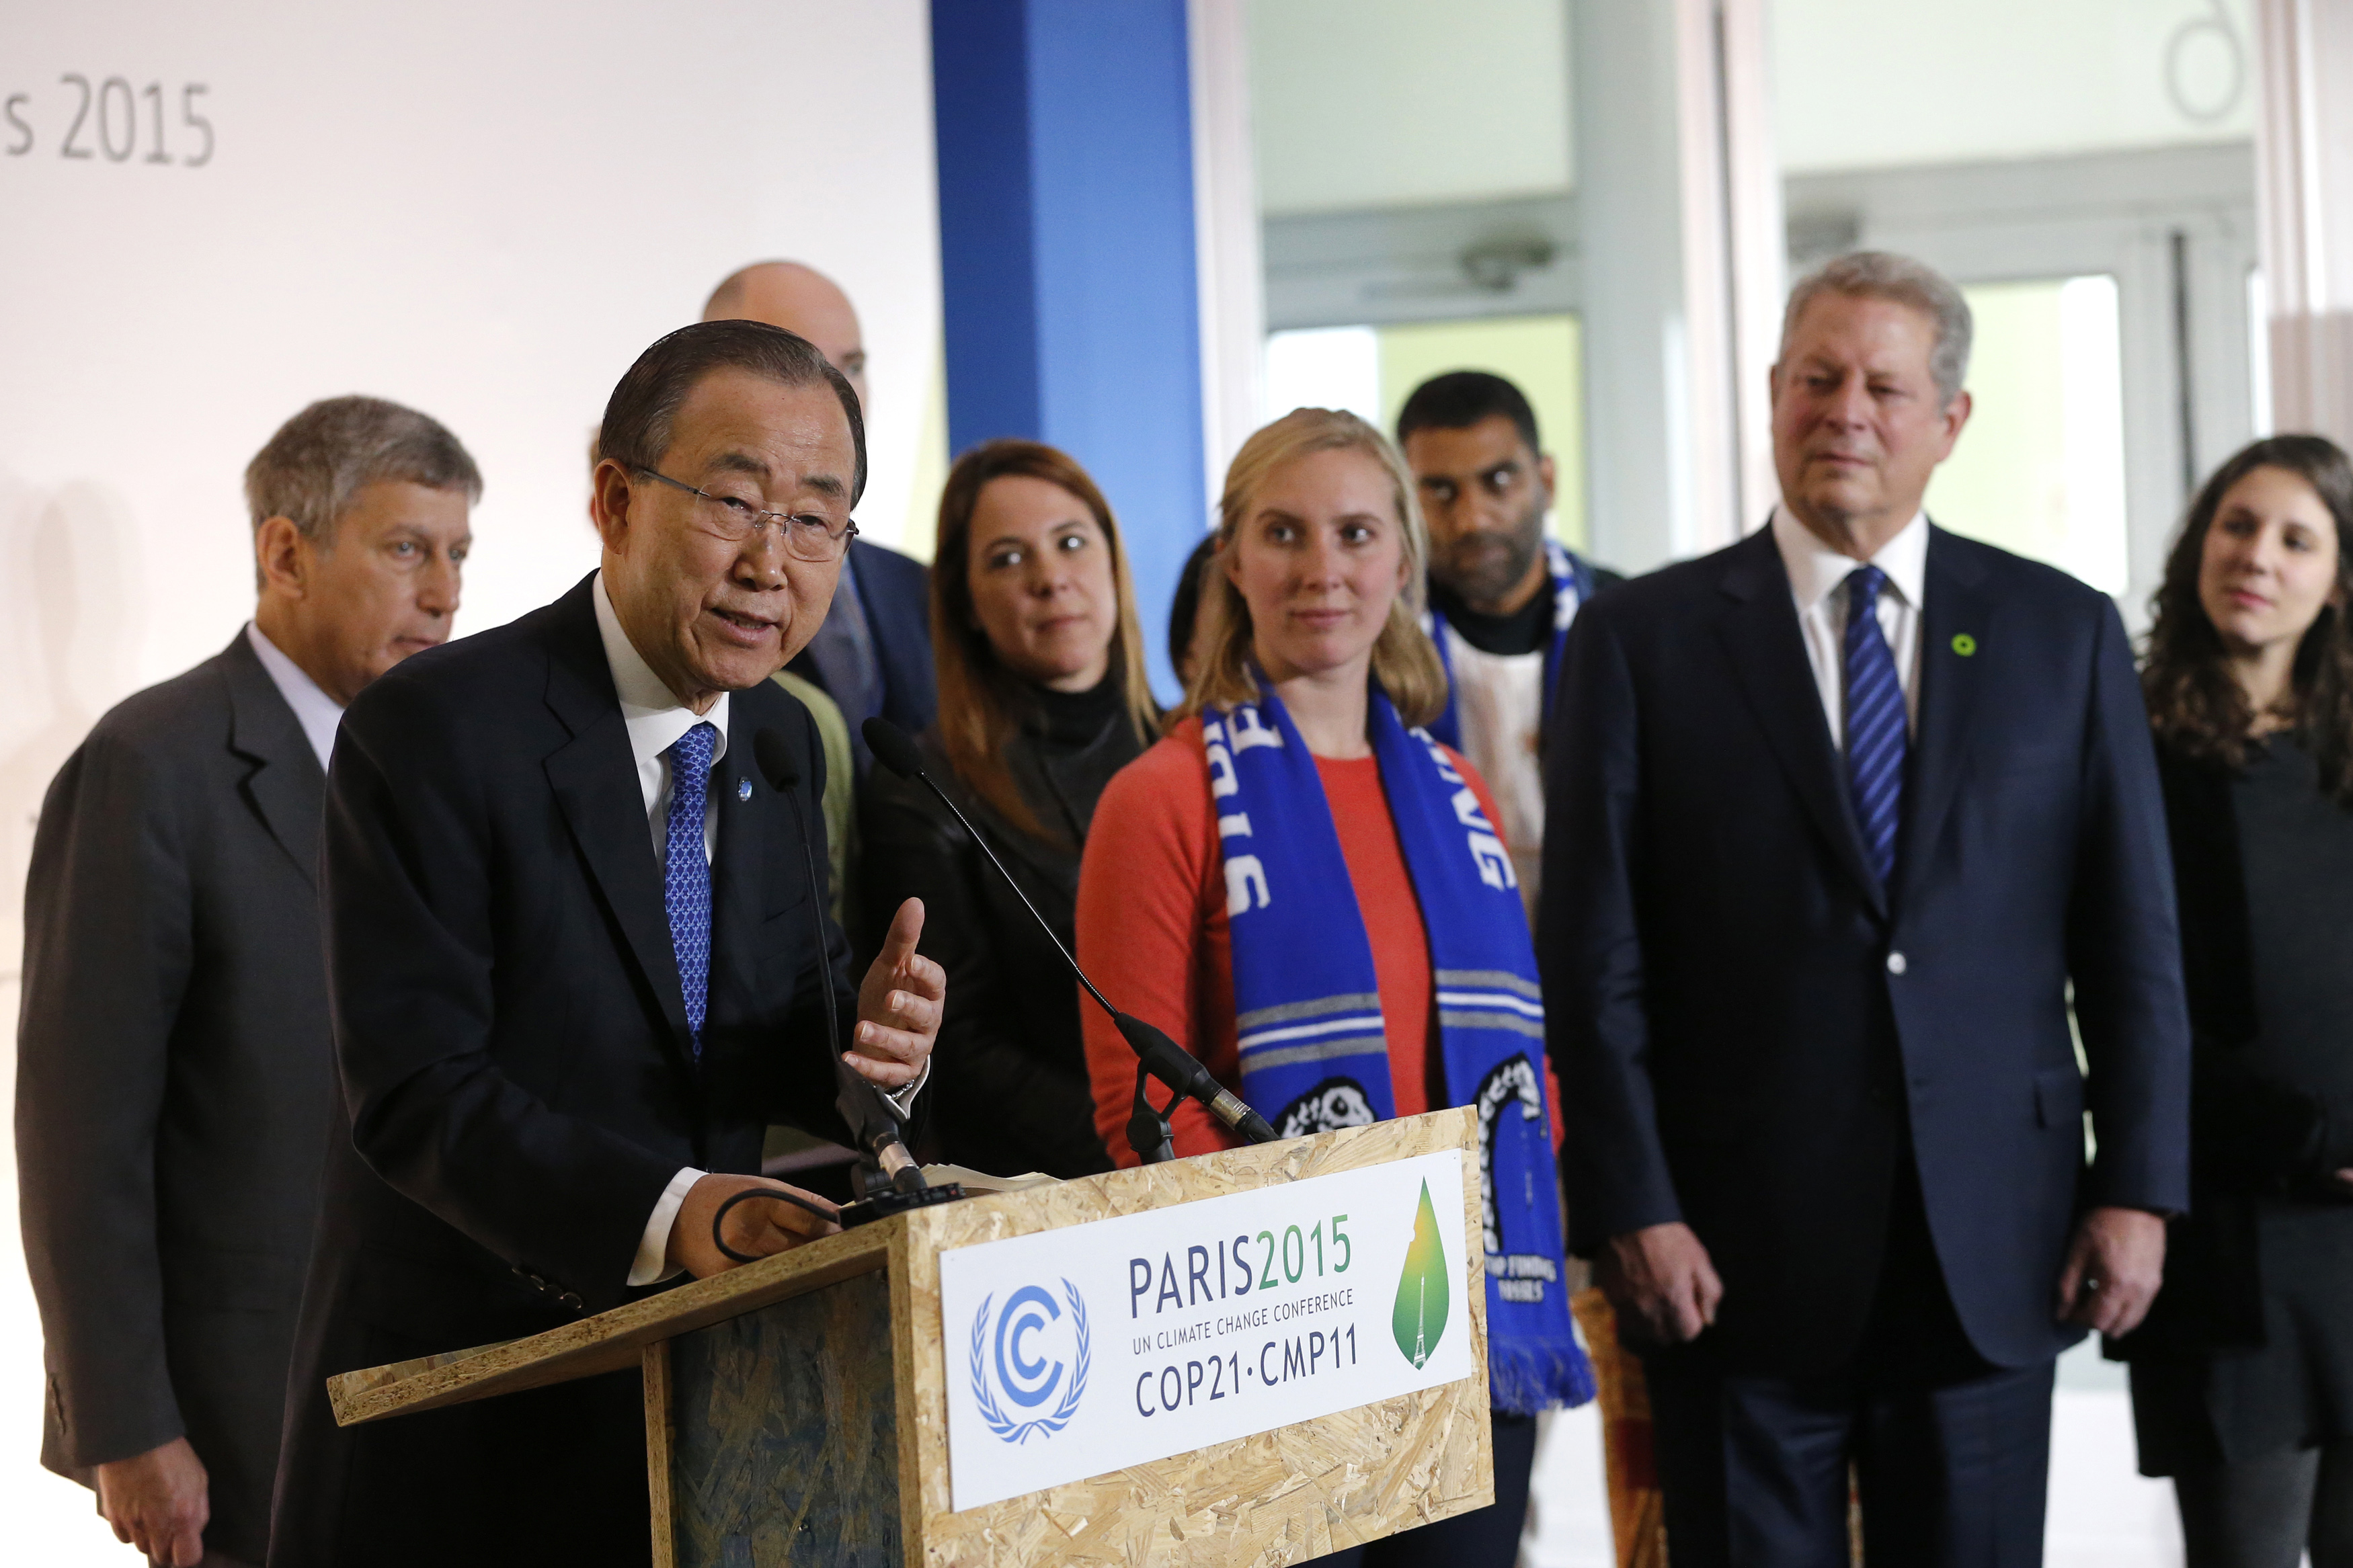 UN Secretary-General Ban Ki-moon delivers his speech near Al Gore, former US Vice President and Climate Reality Project Chairman, during the World Climate Change Conference 2015 (COP21) at Le Bourget